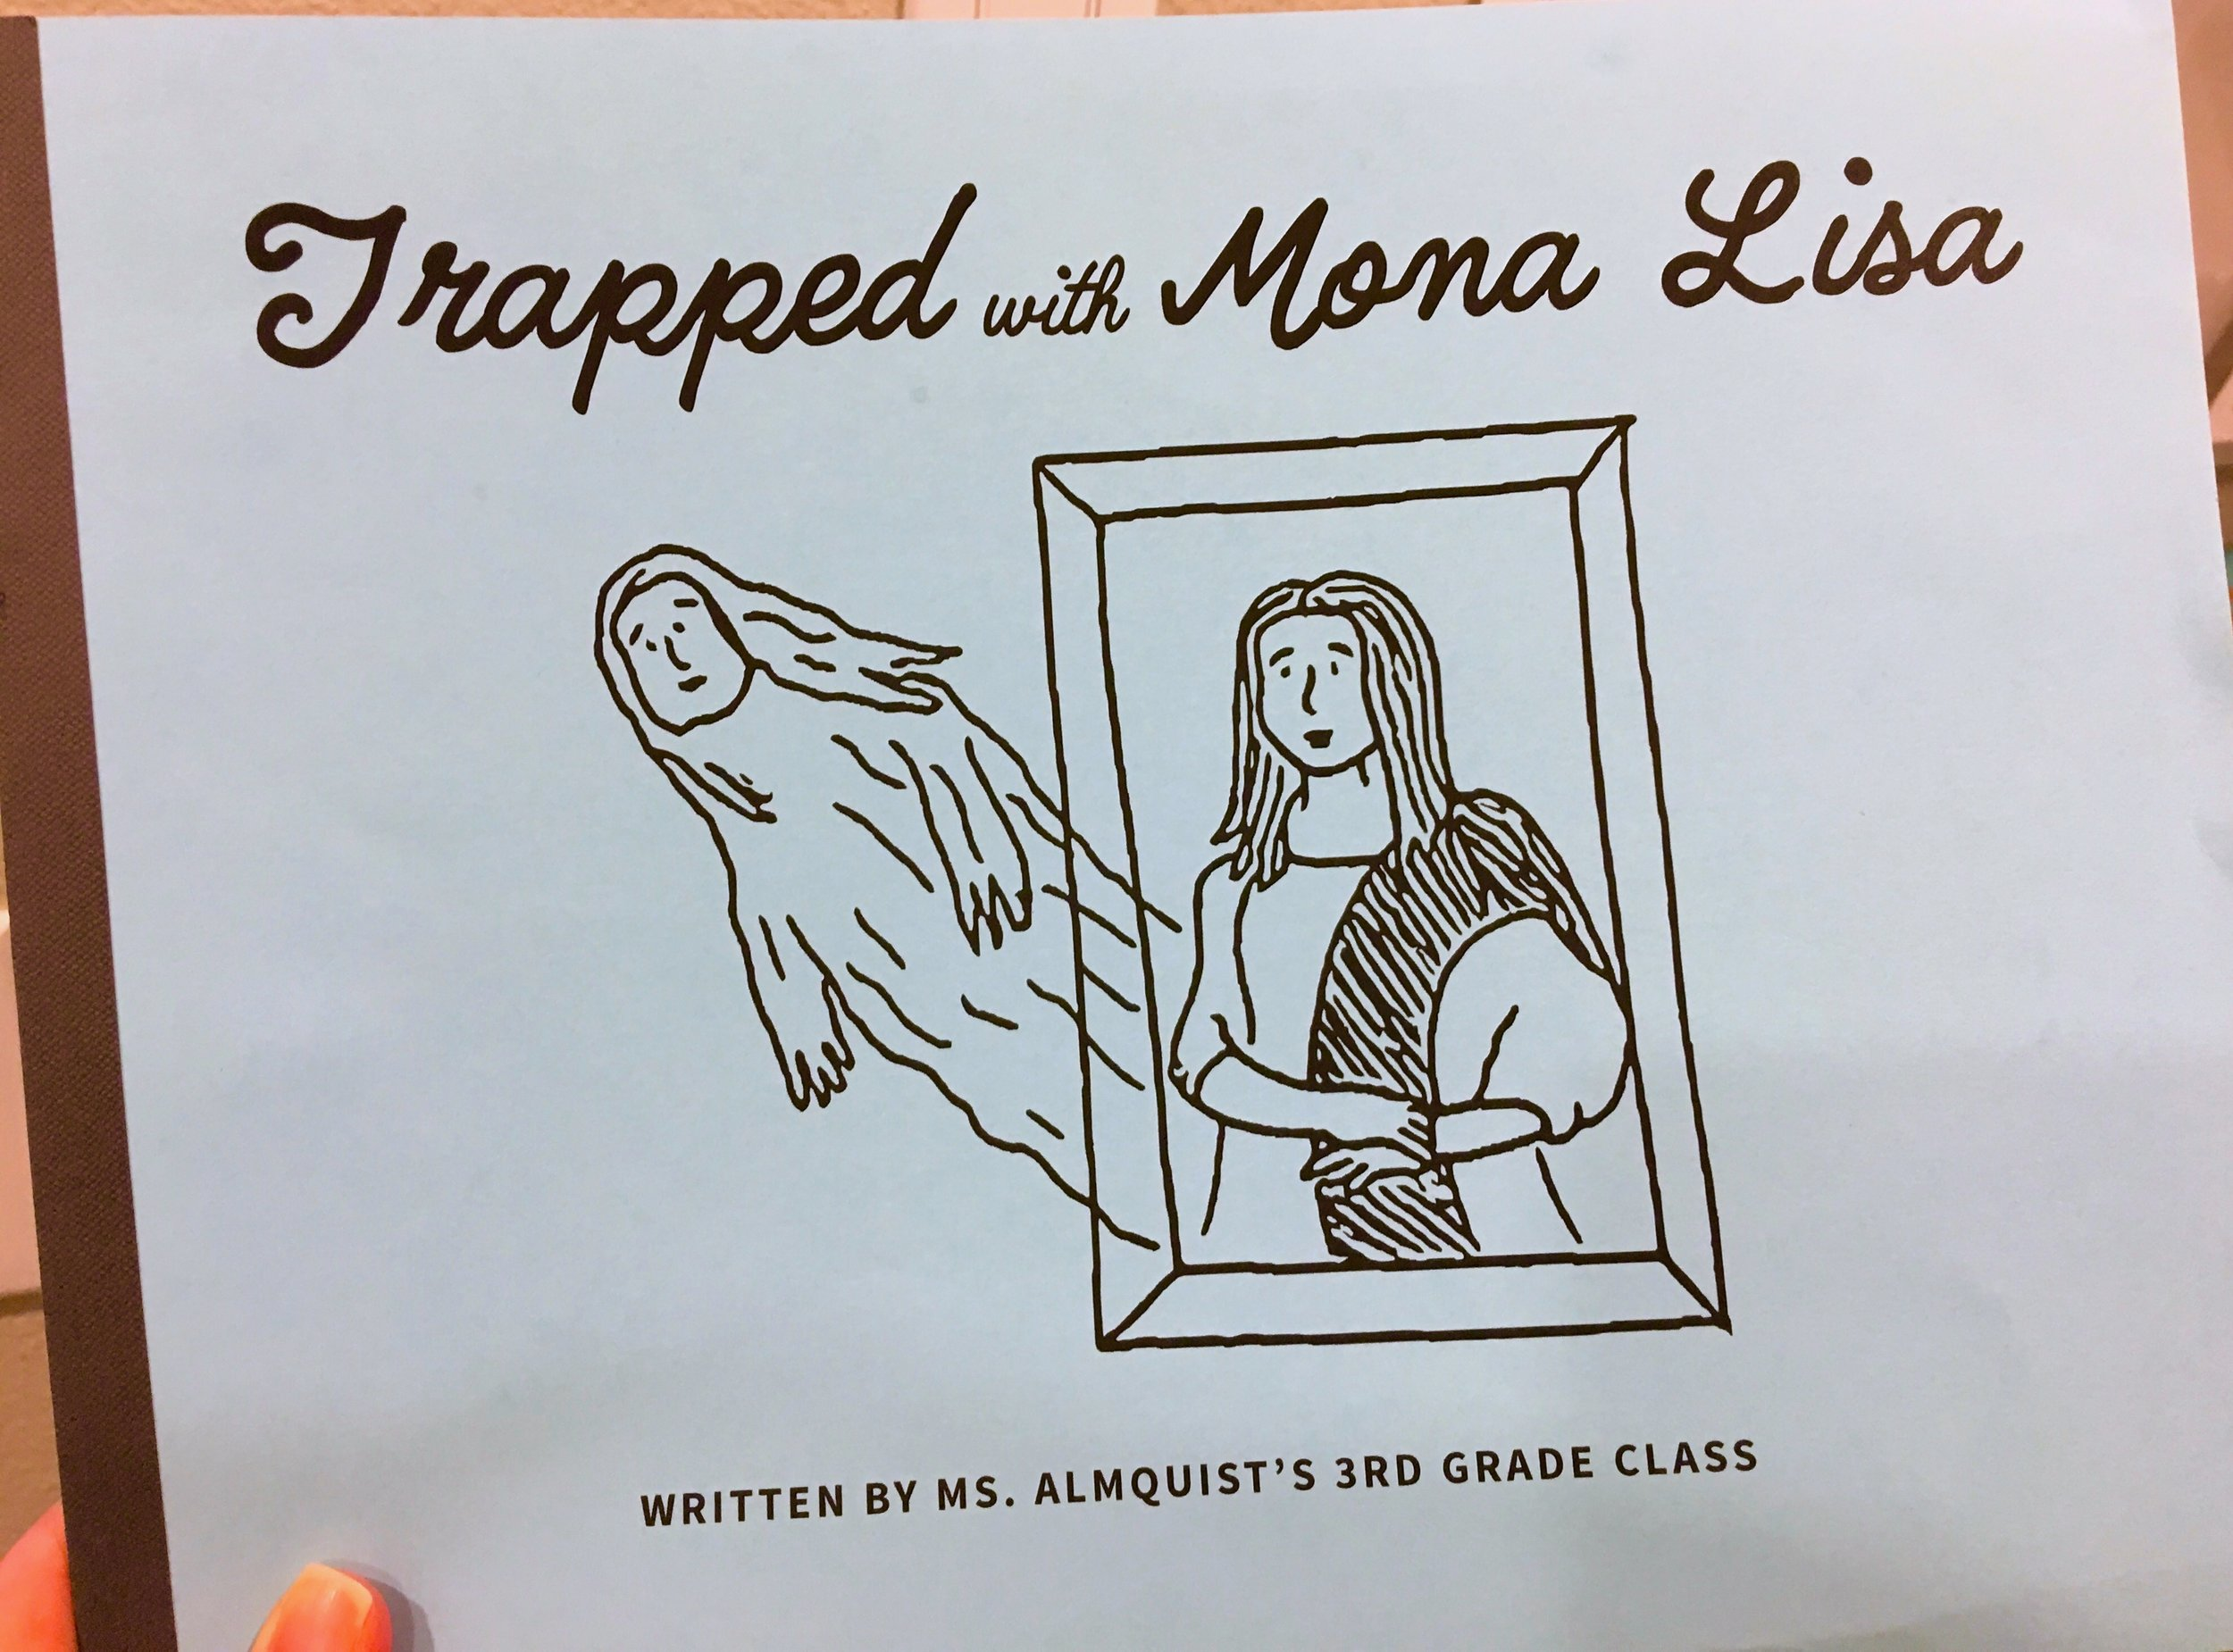 Trapped with Mona Lisa